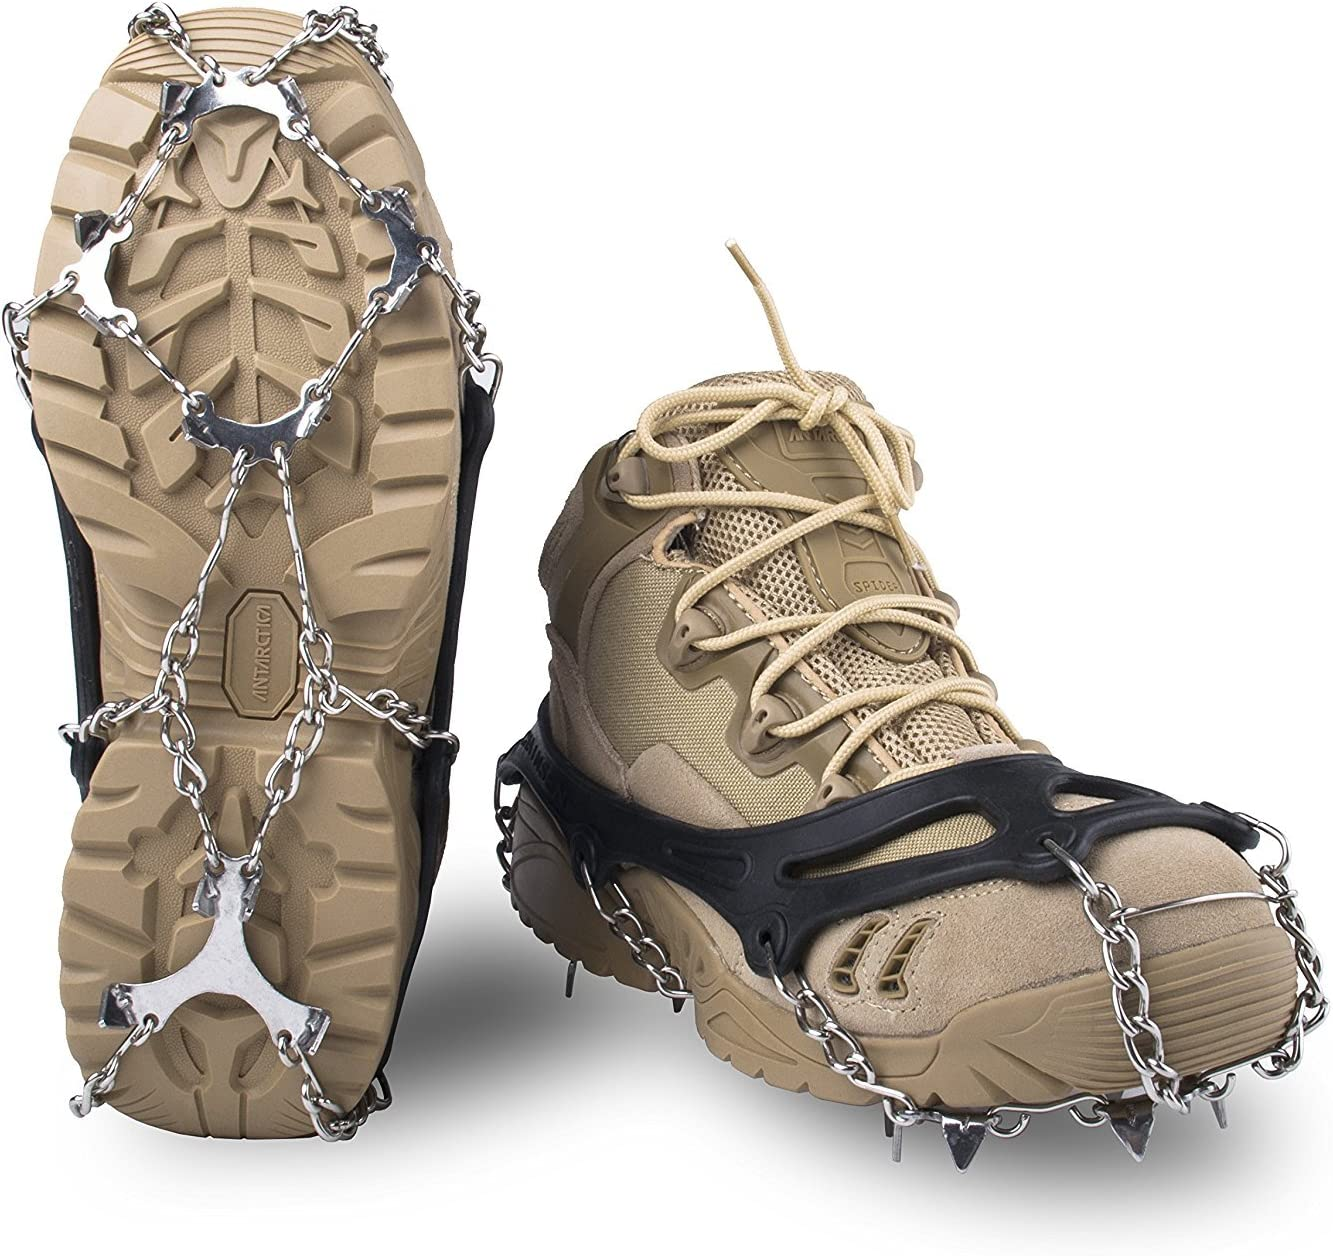 Springk traction cleats for snow and ice